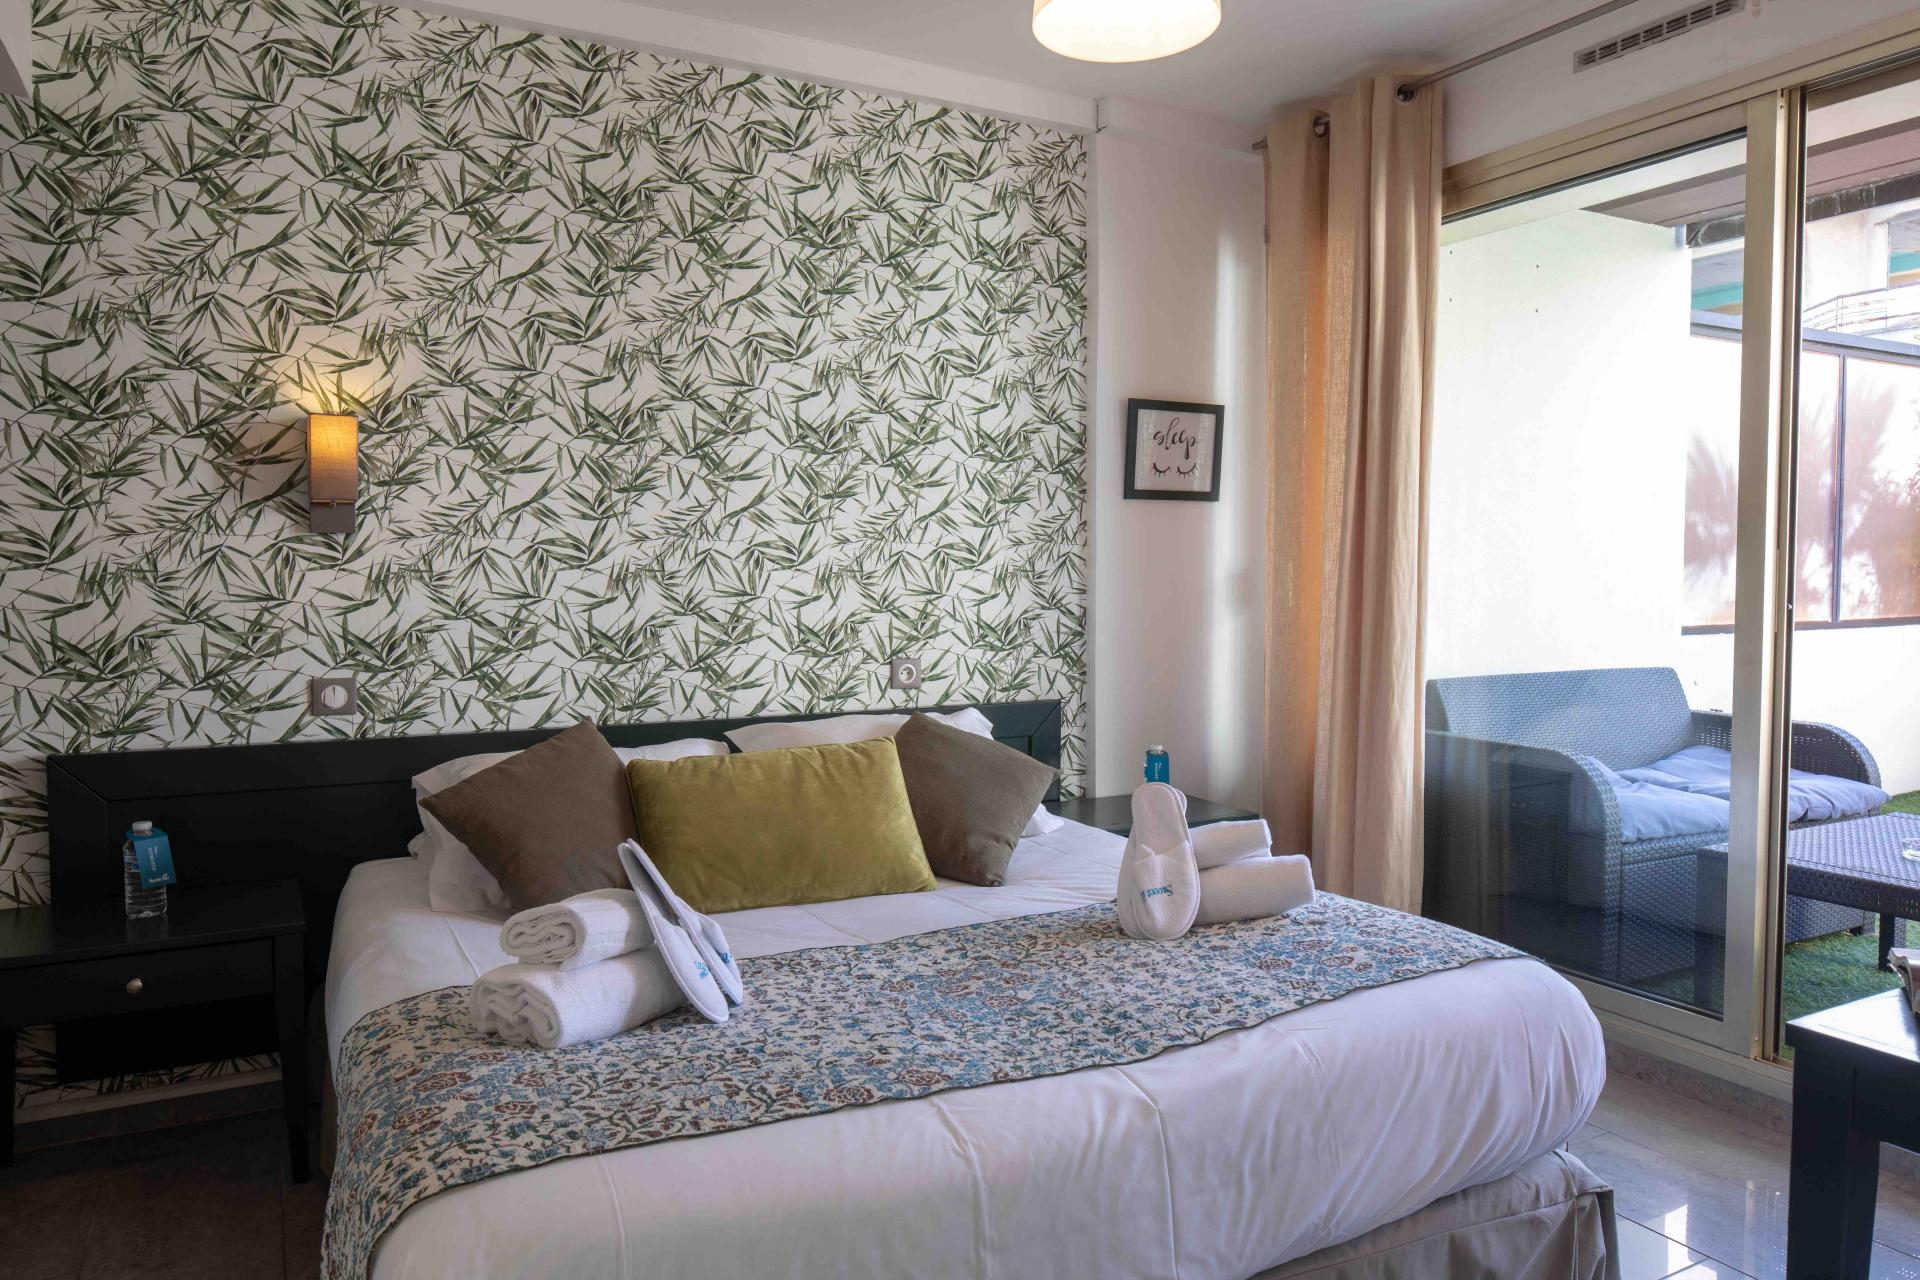 Bed at Deluxe Terrace Apartments, Juan-Les-Pins, Antibes